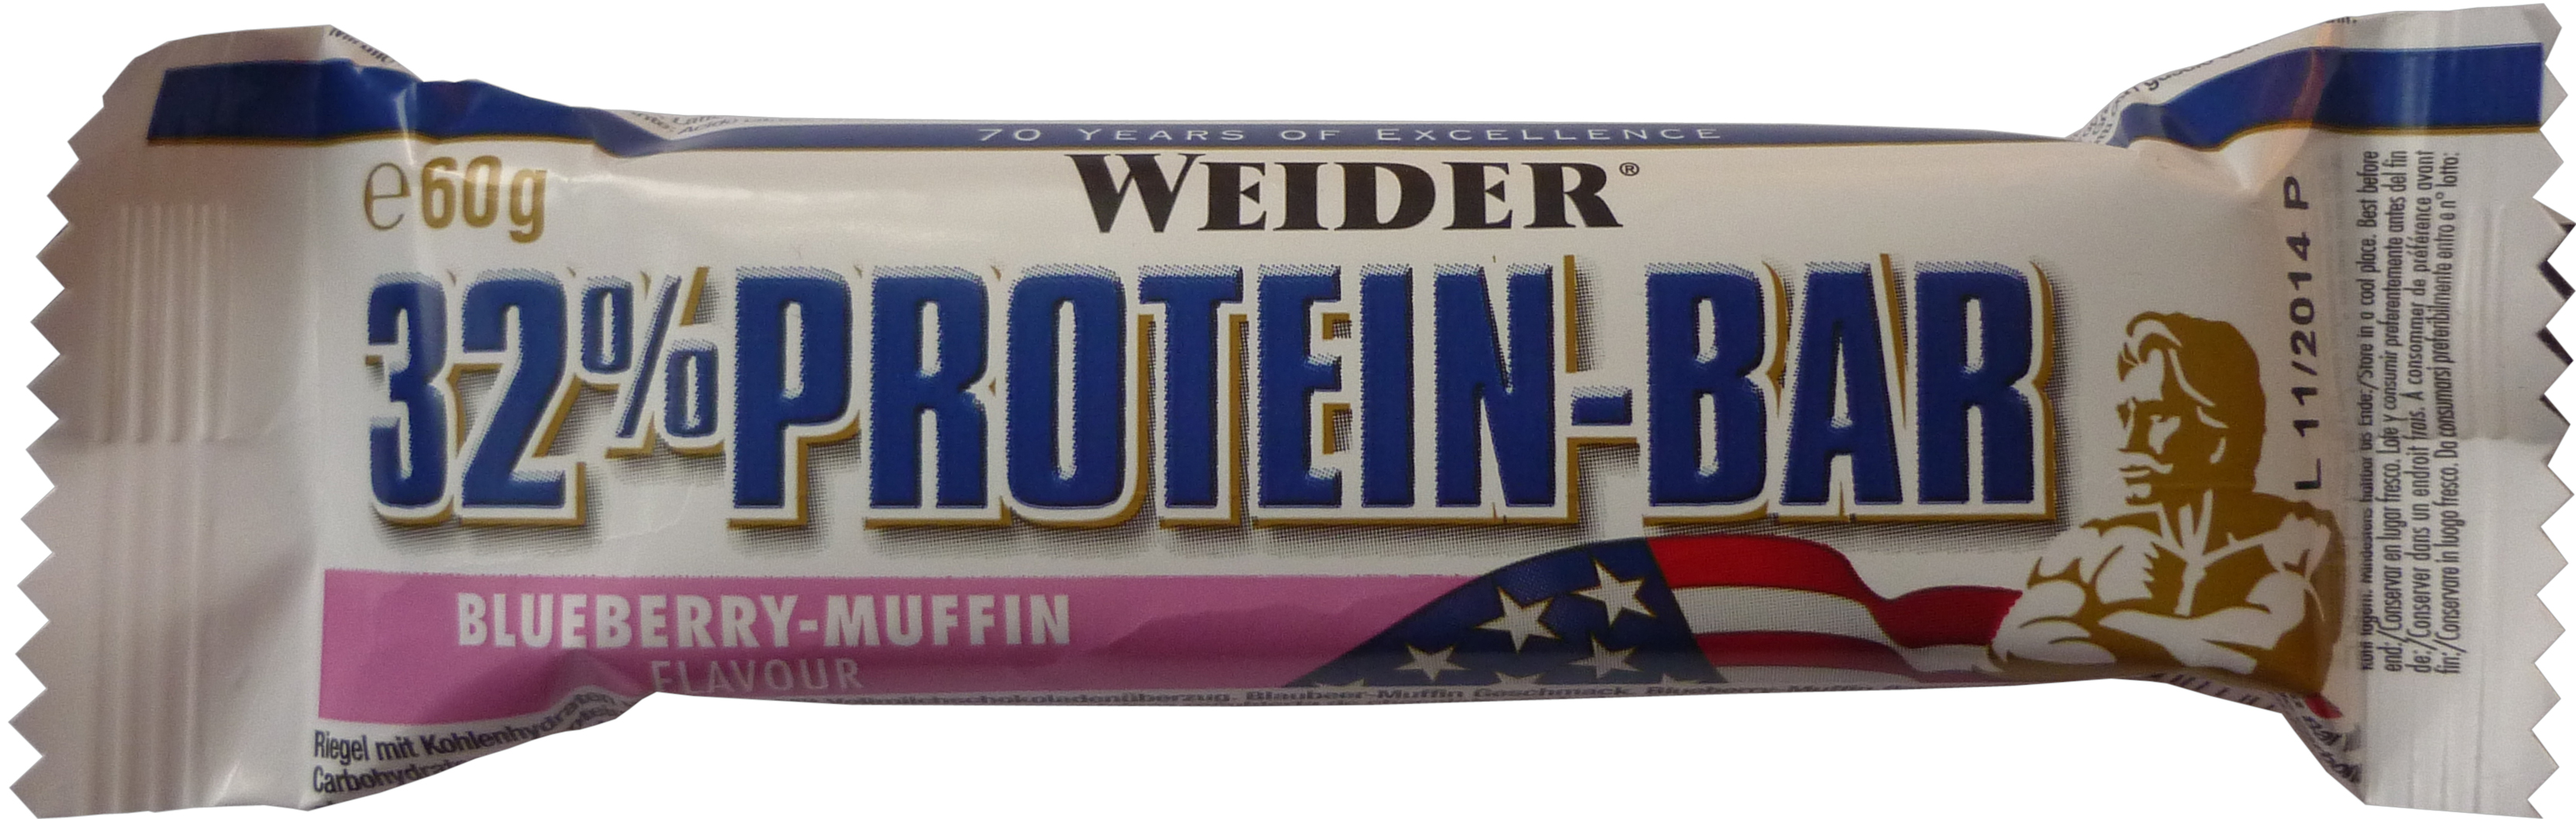 Weider - Blueberry-Muffin